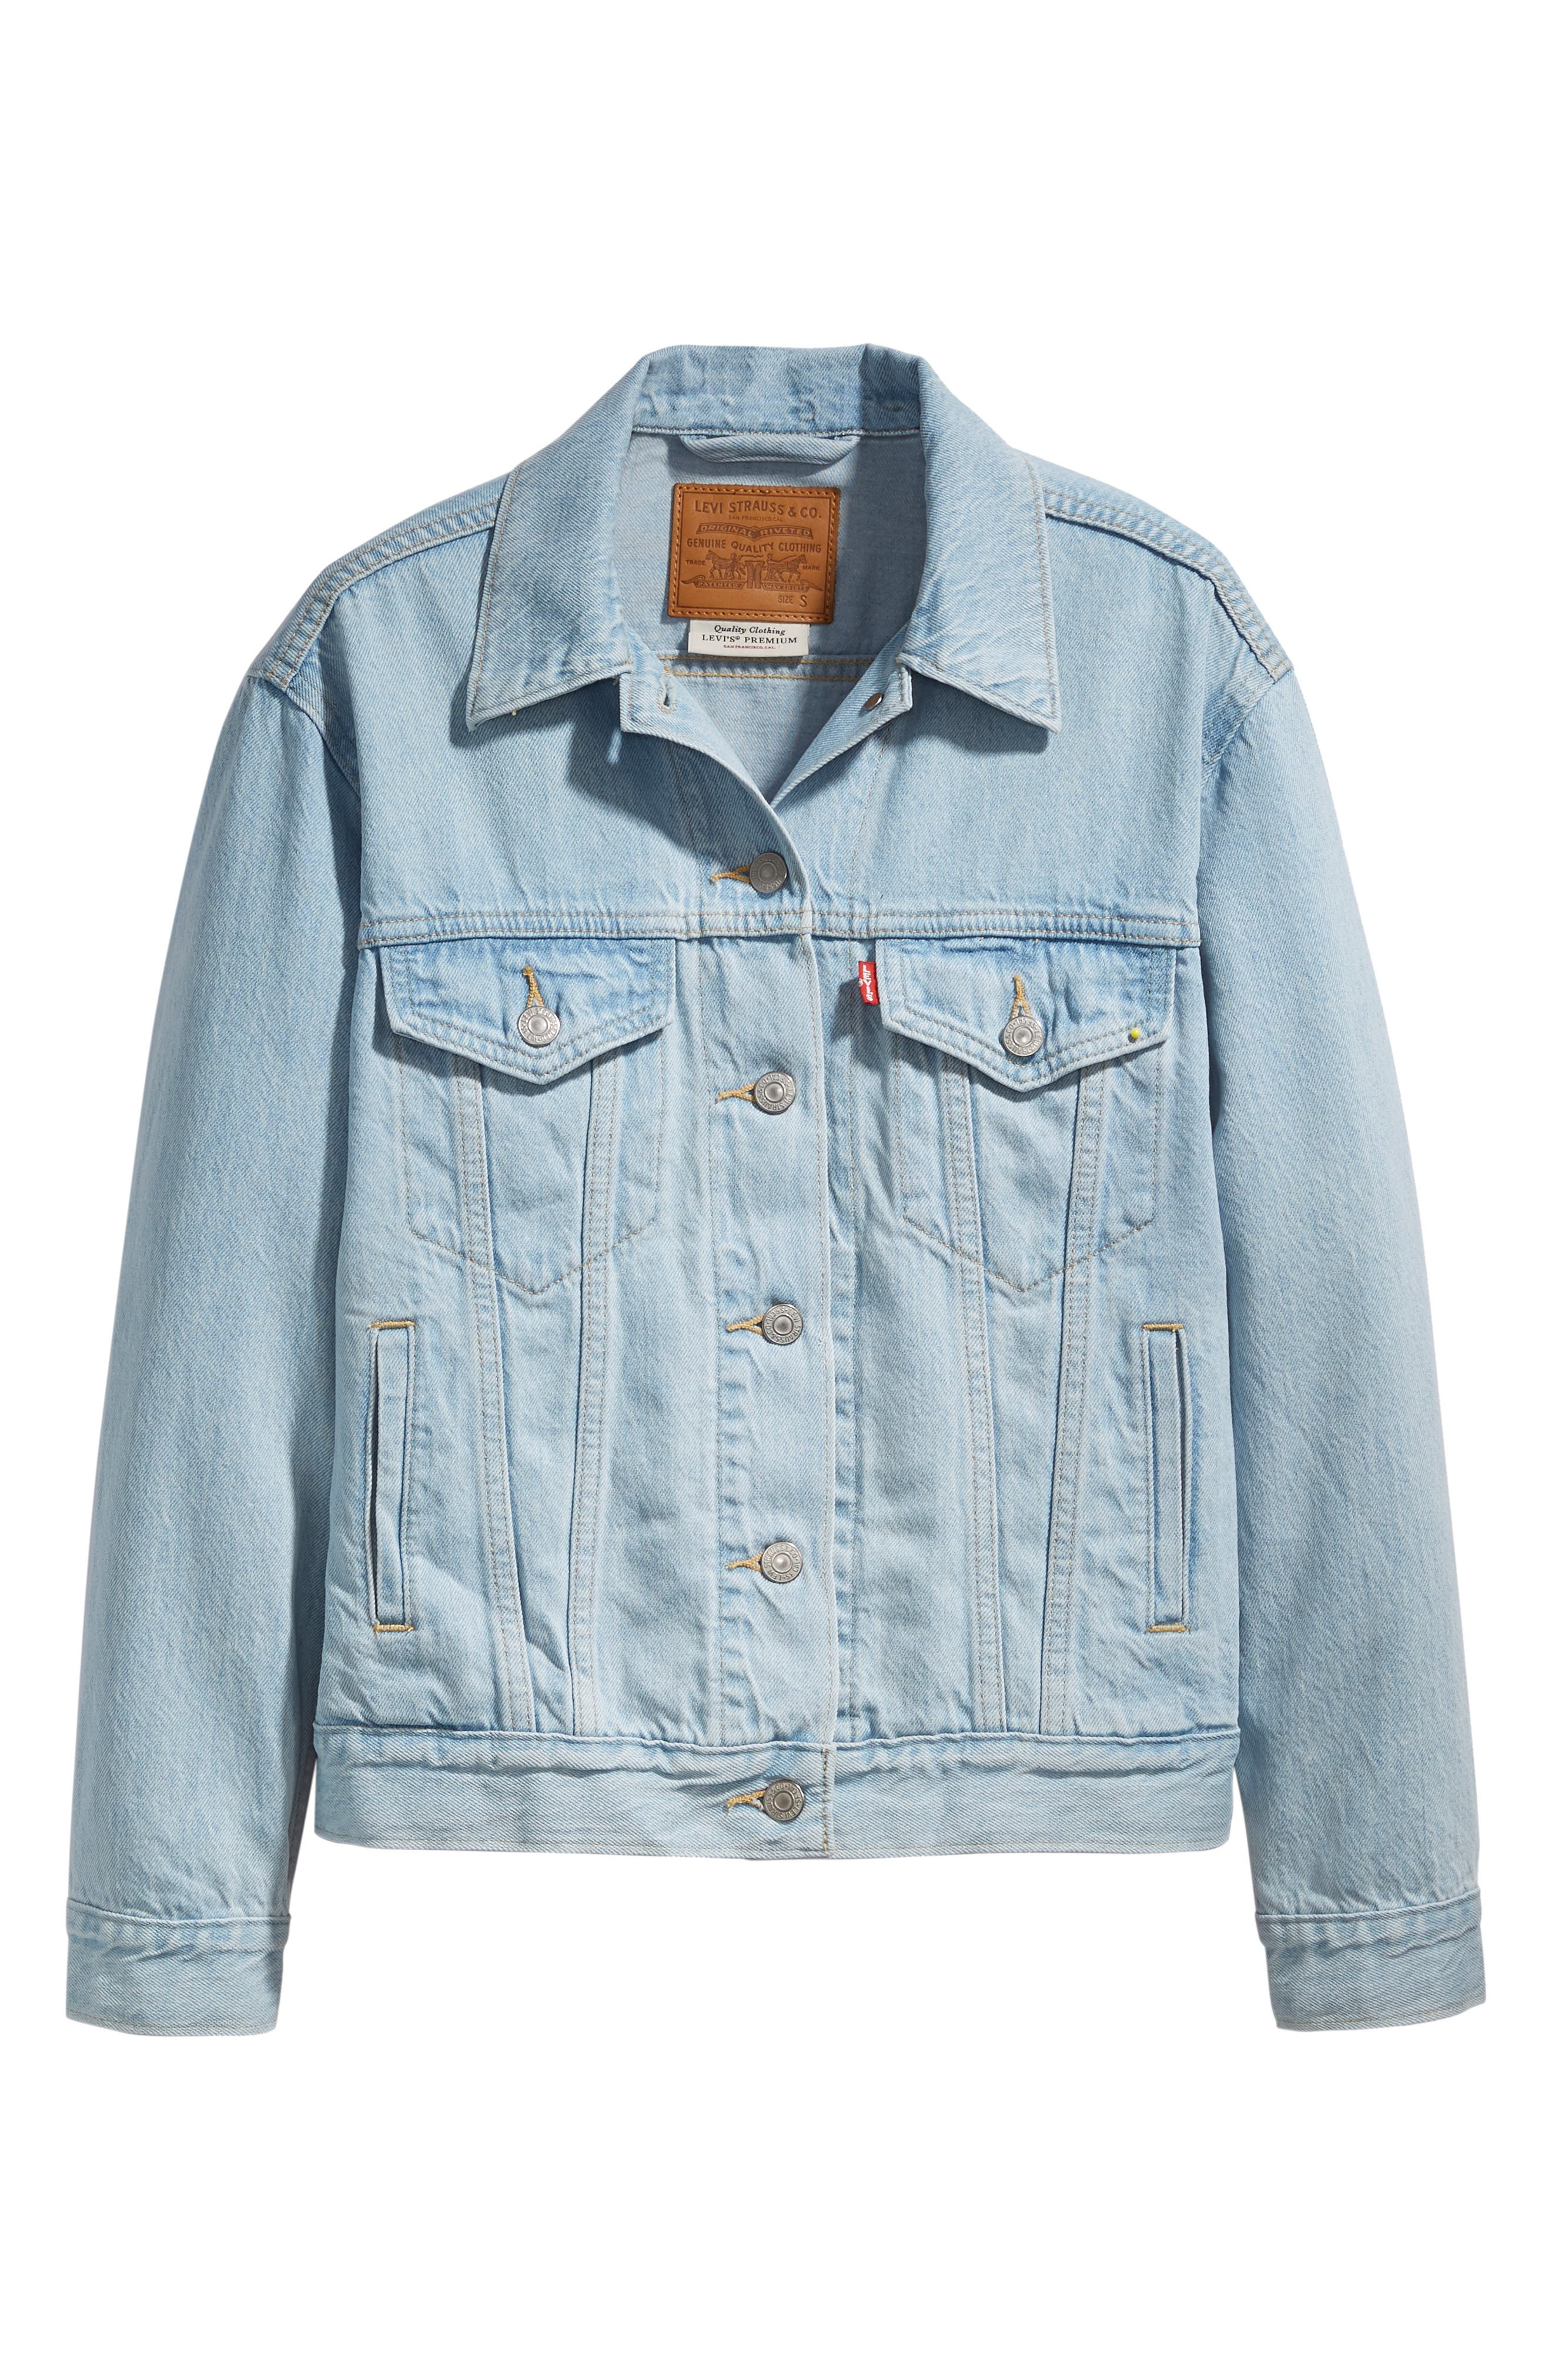 LEVI'S<SUP>®</SUP>, Ex-Boyfriend Denim Trucker Jacket, Alternate thumbnail 3, color, 420